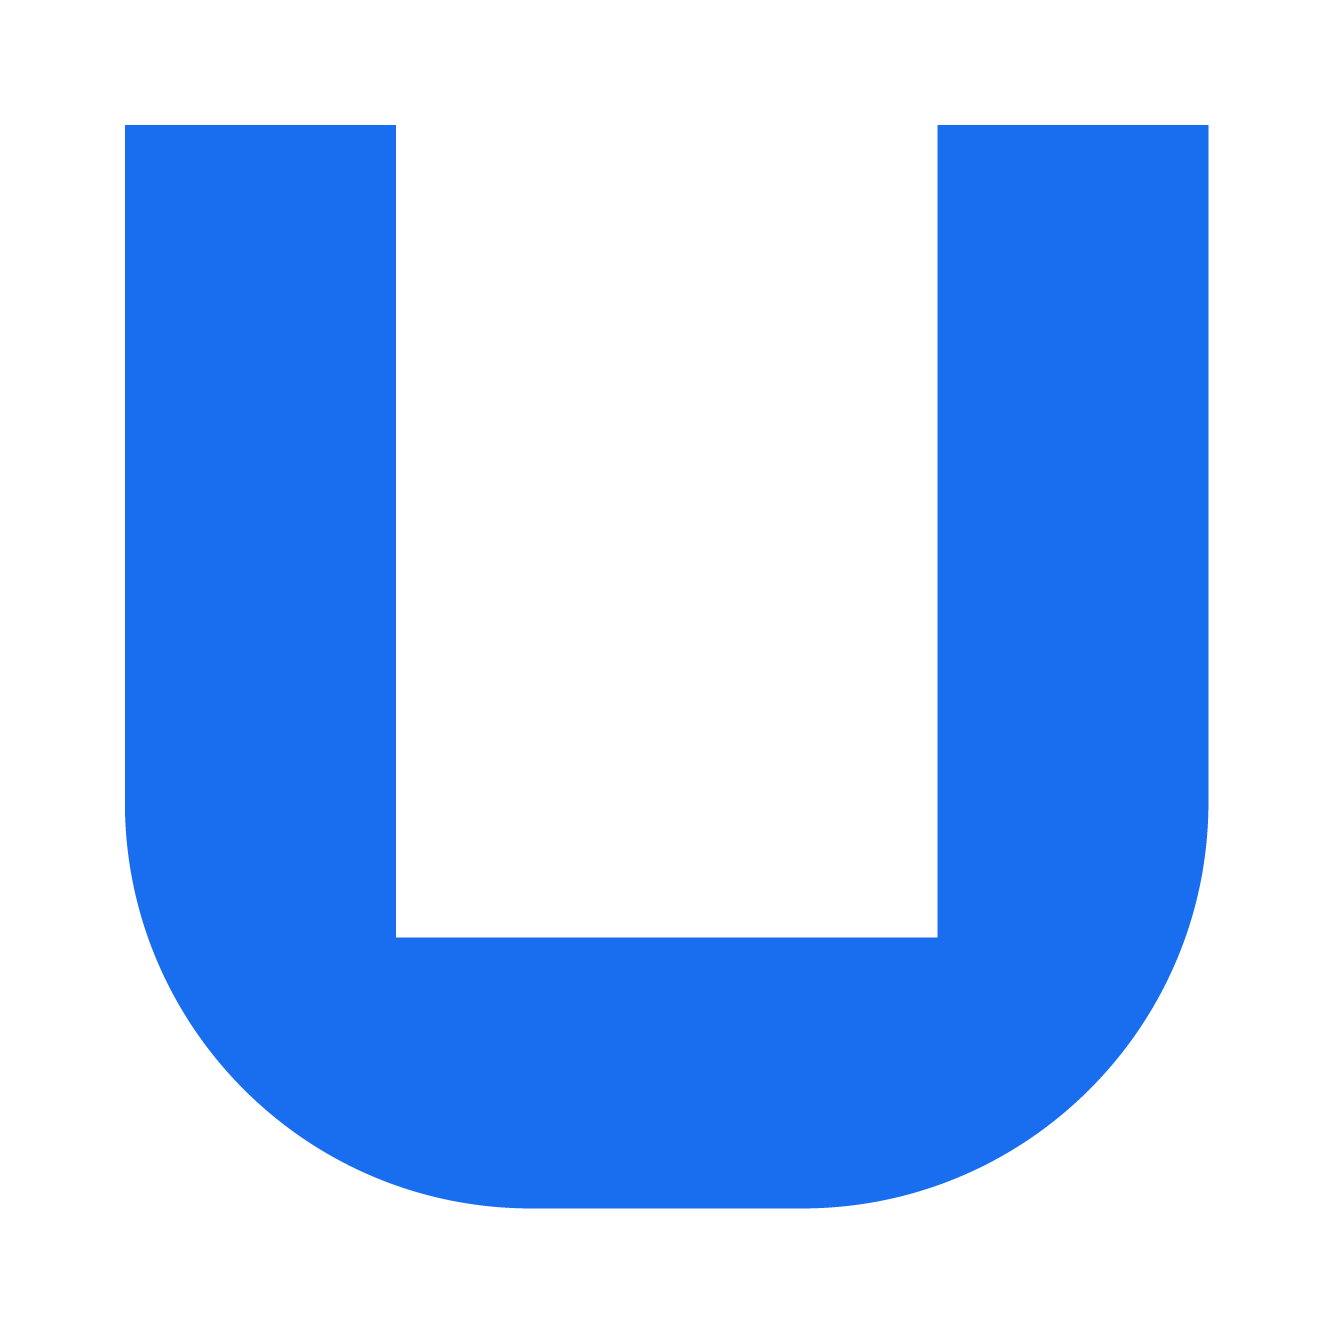 The new stand alone Ultimaker logo. Image via Ultimaker.